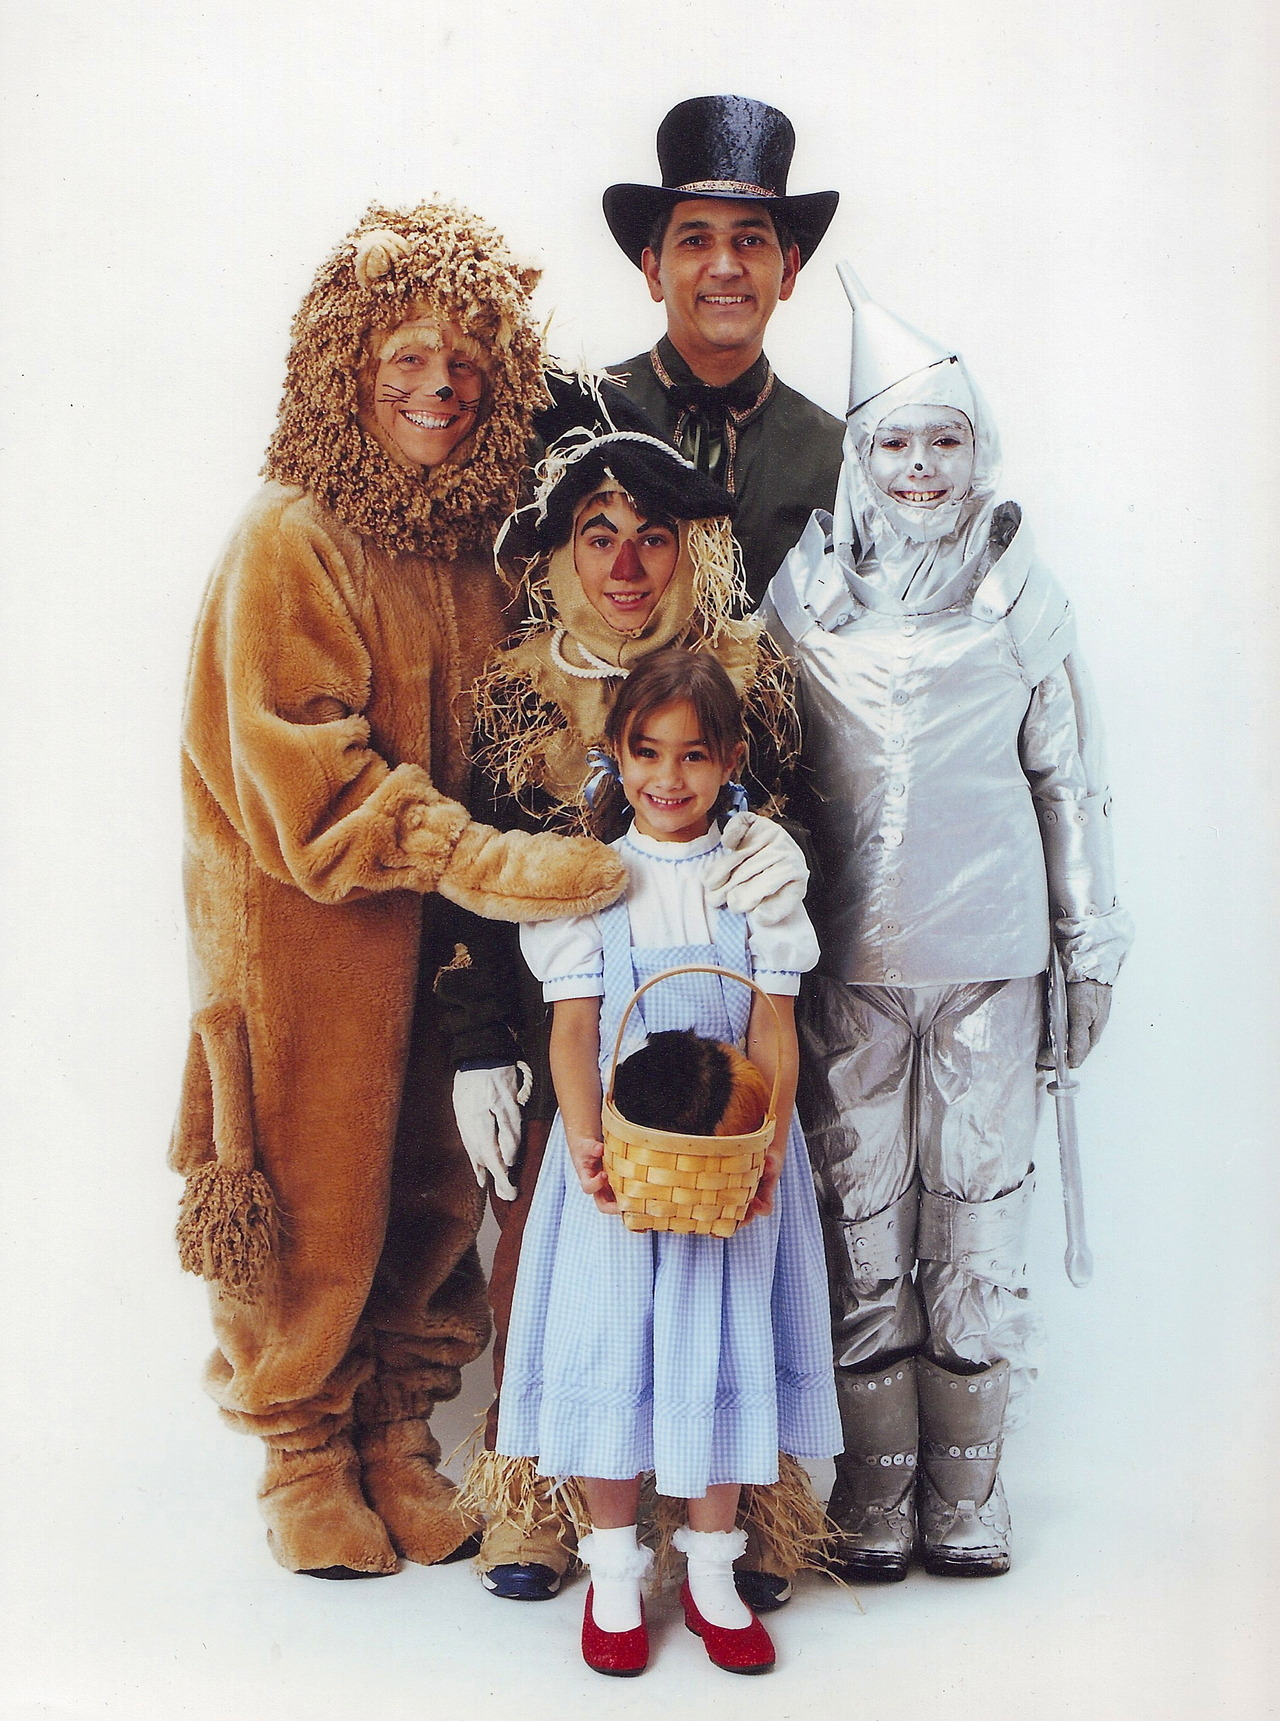 """The whole family dressed up one year for Halloween -- Dad was the Wizard, Mom was the Lion, oldest son was Tin Man, middle son was scarecrow, daughter was Dorothy, and guinea pig was Toto."" -- submitted by amberink"